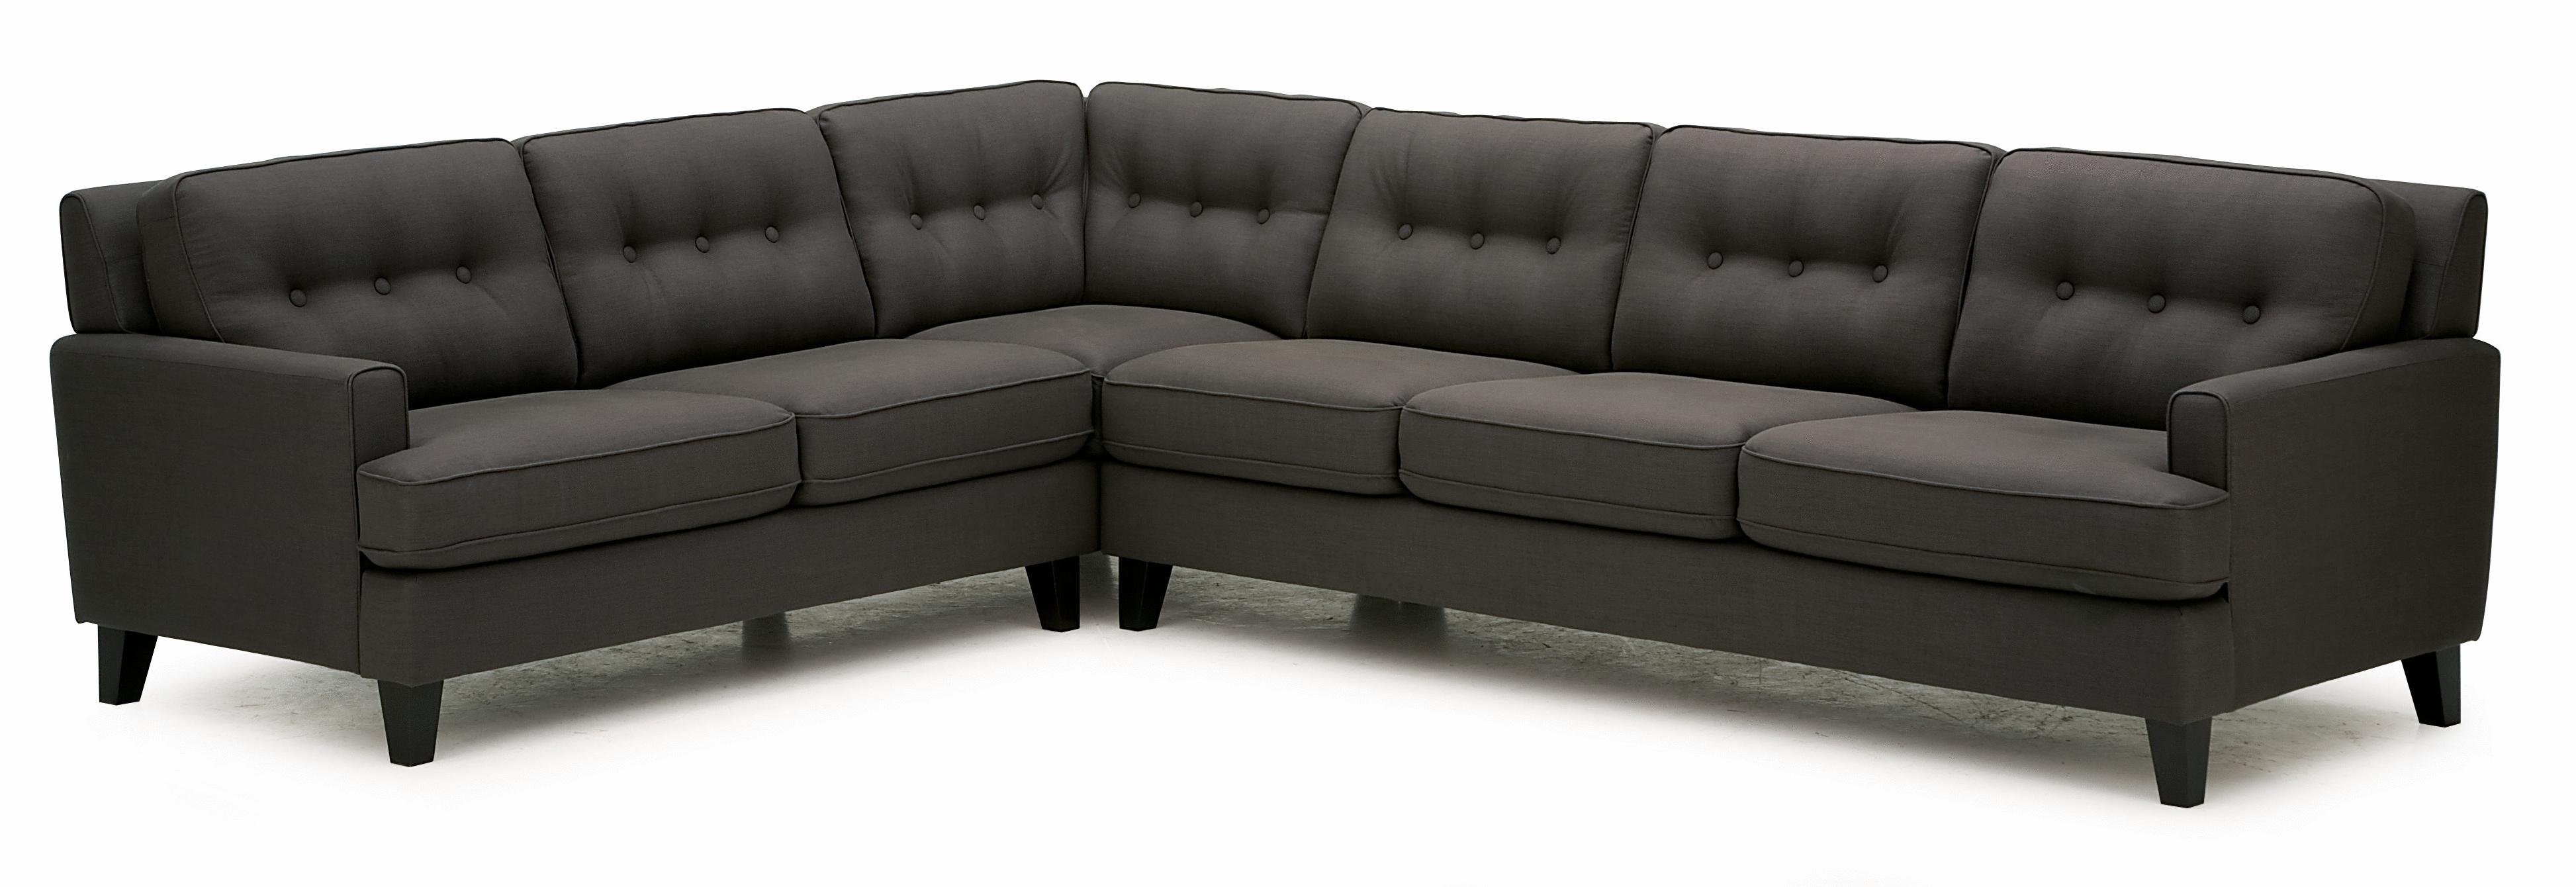 Barbara Two Piece Sectional Sofa with RHF Sofa Split by Palliser at Jordan's Home Furnishings